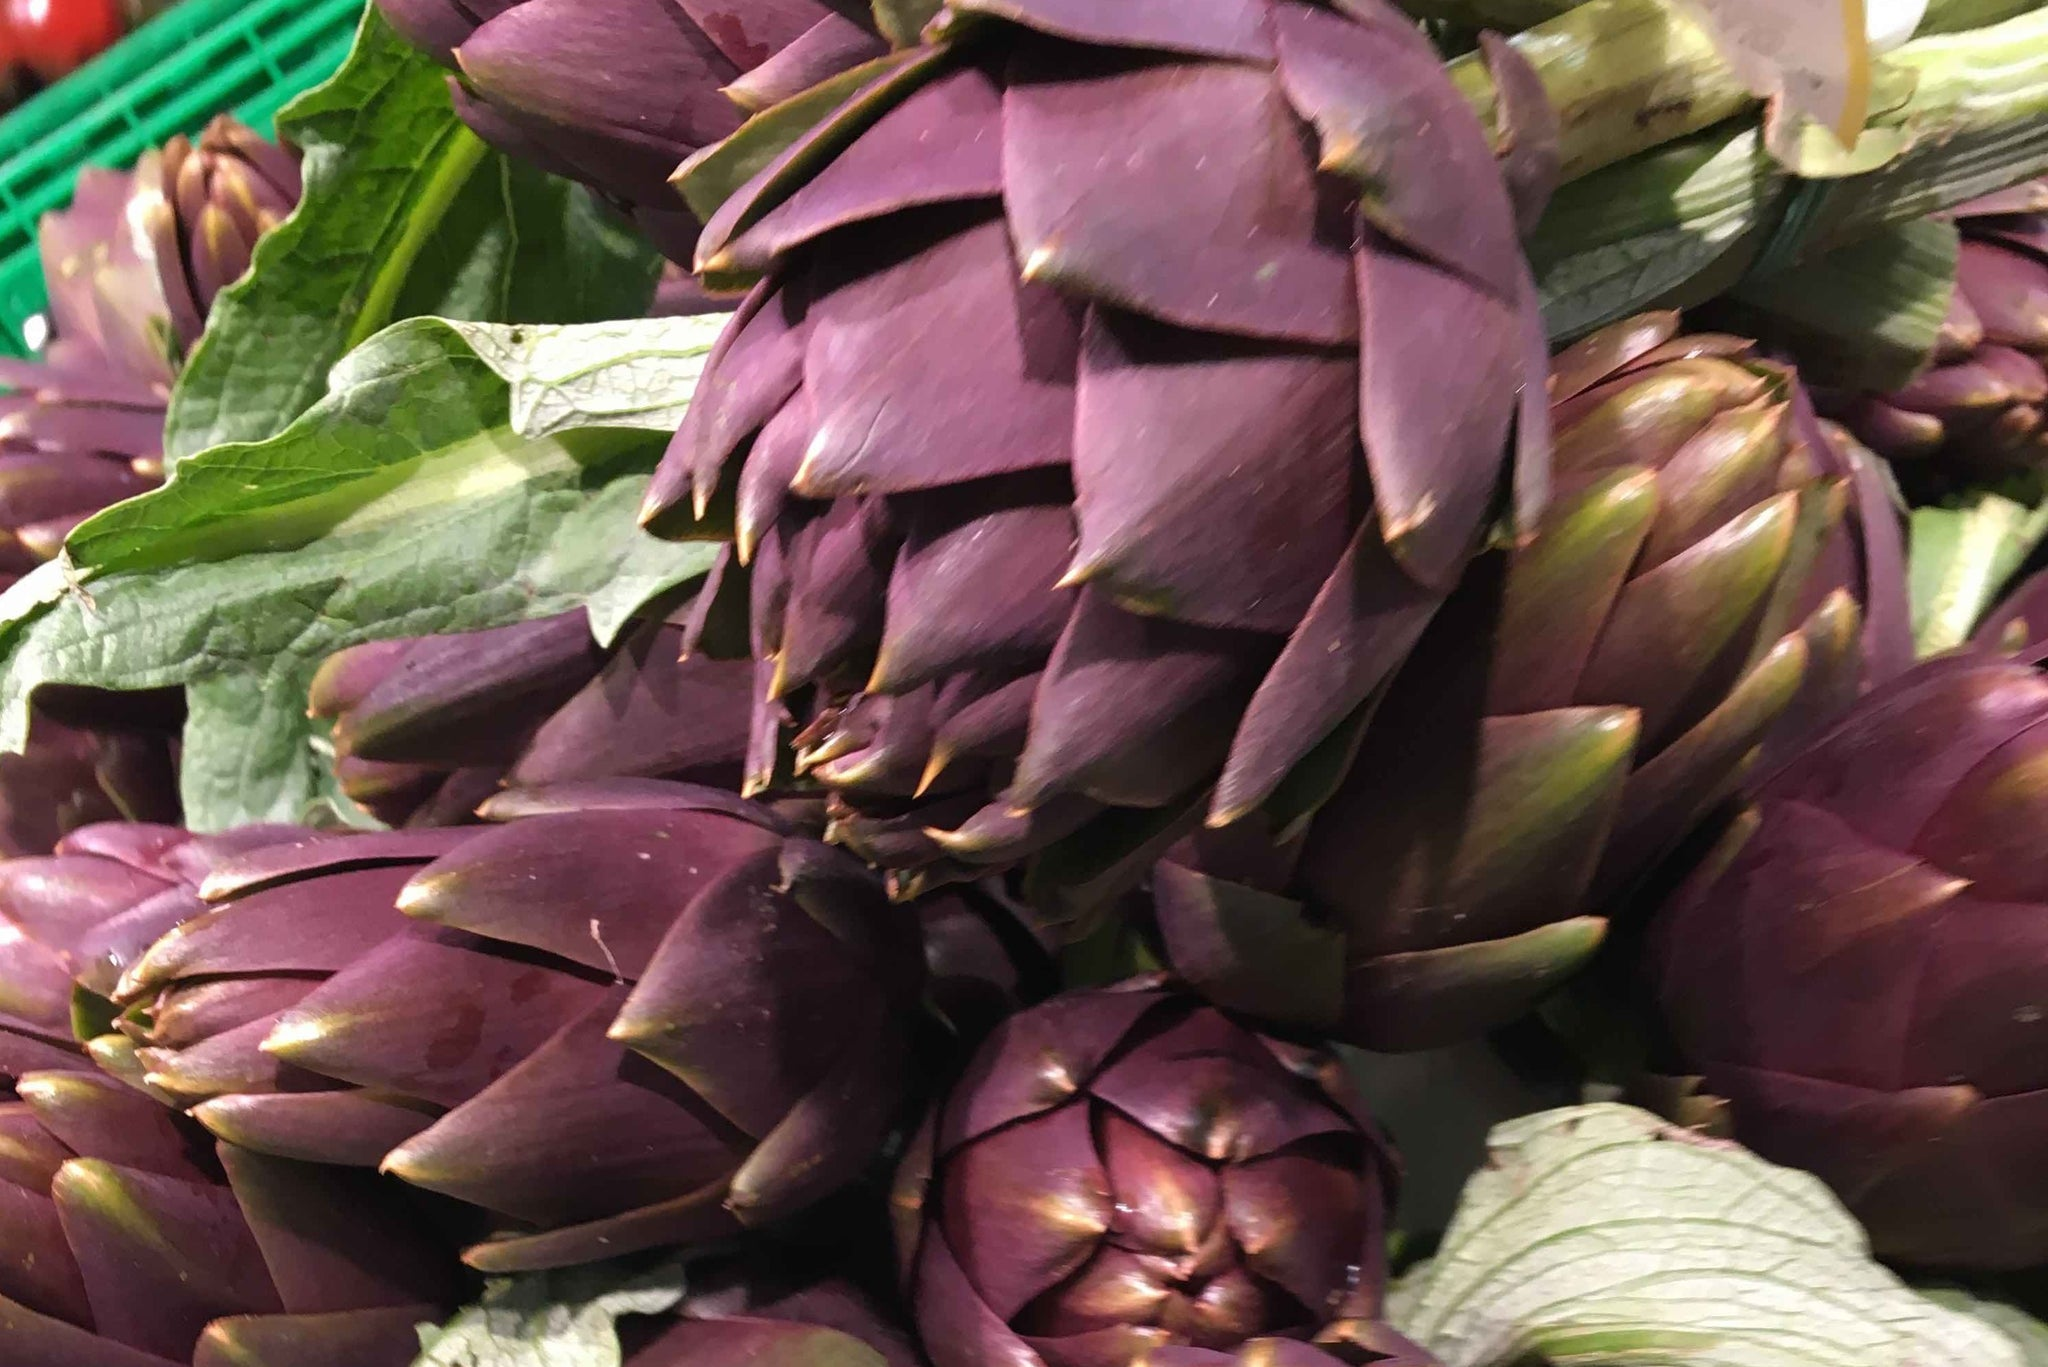 Steamed Balsamic Globe Artichokes